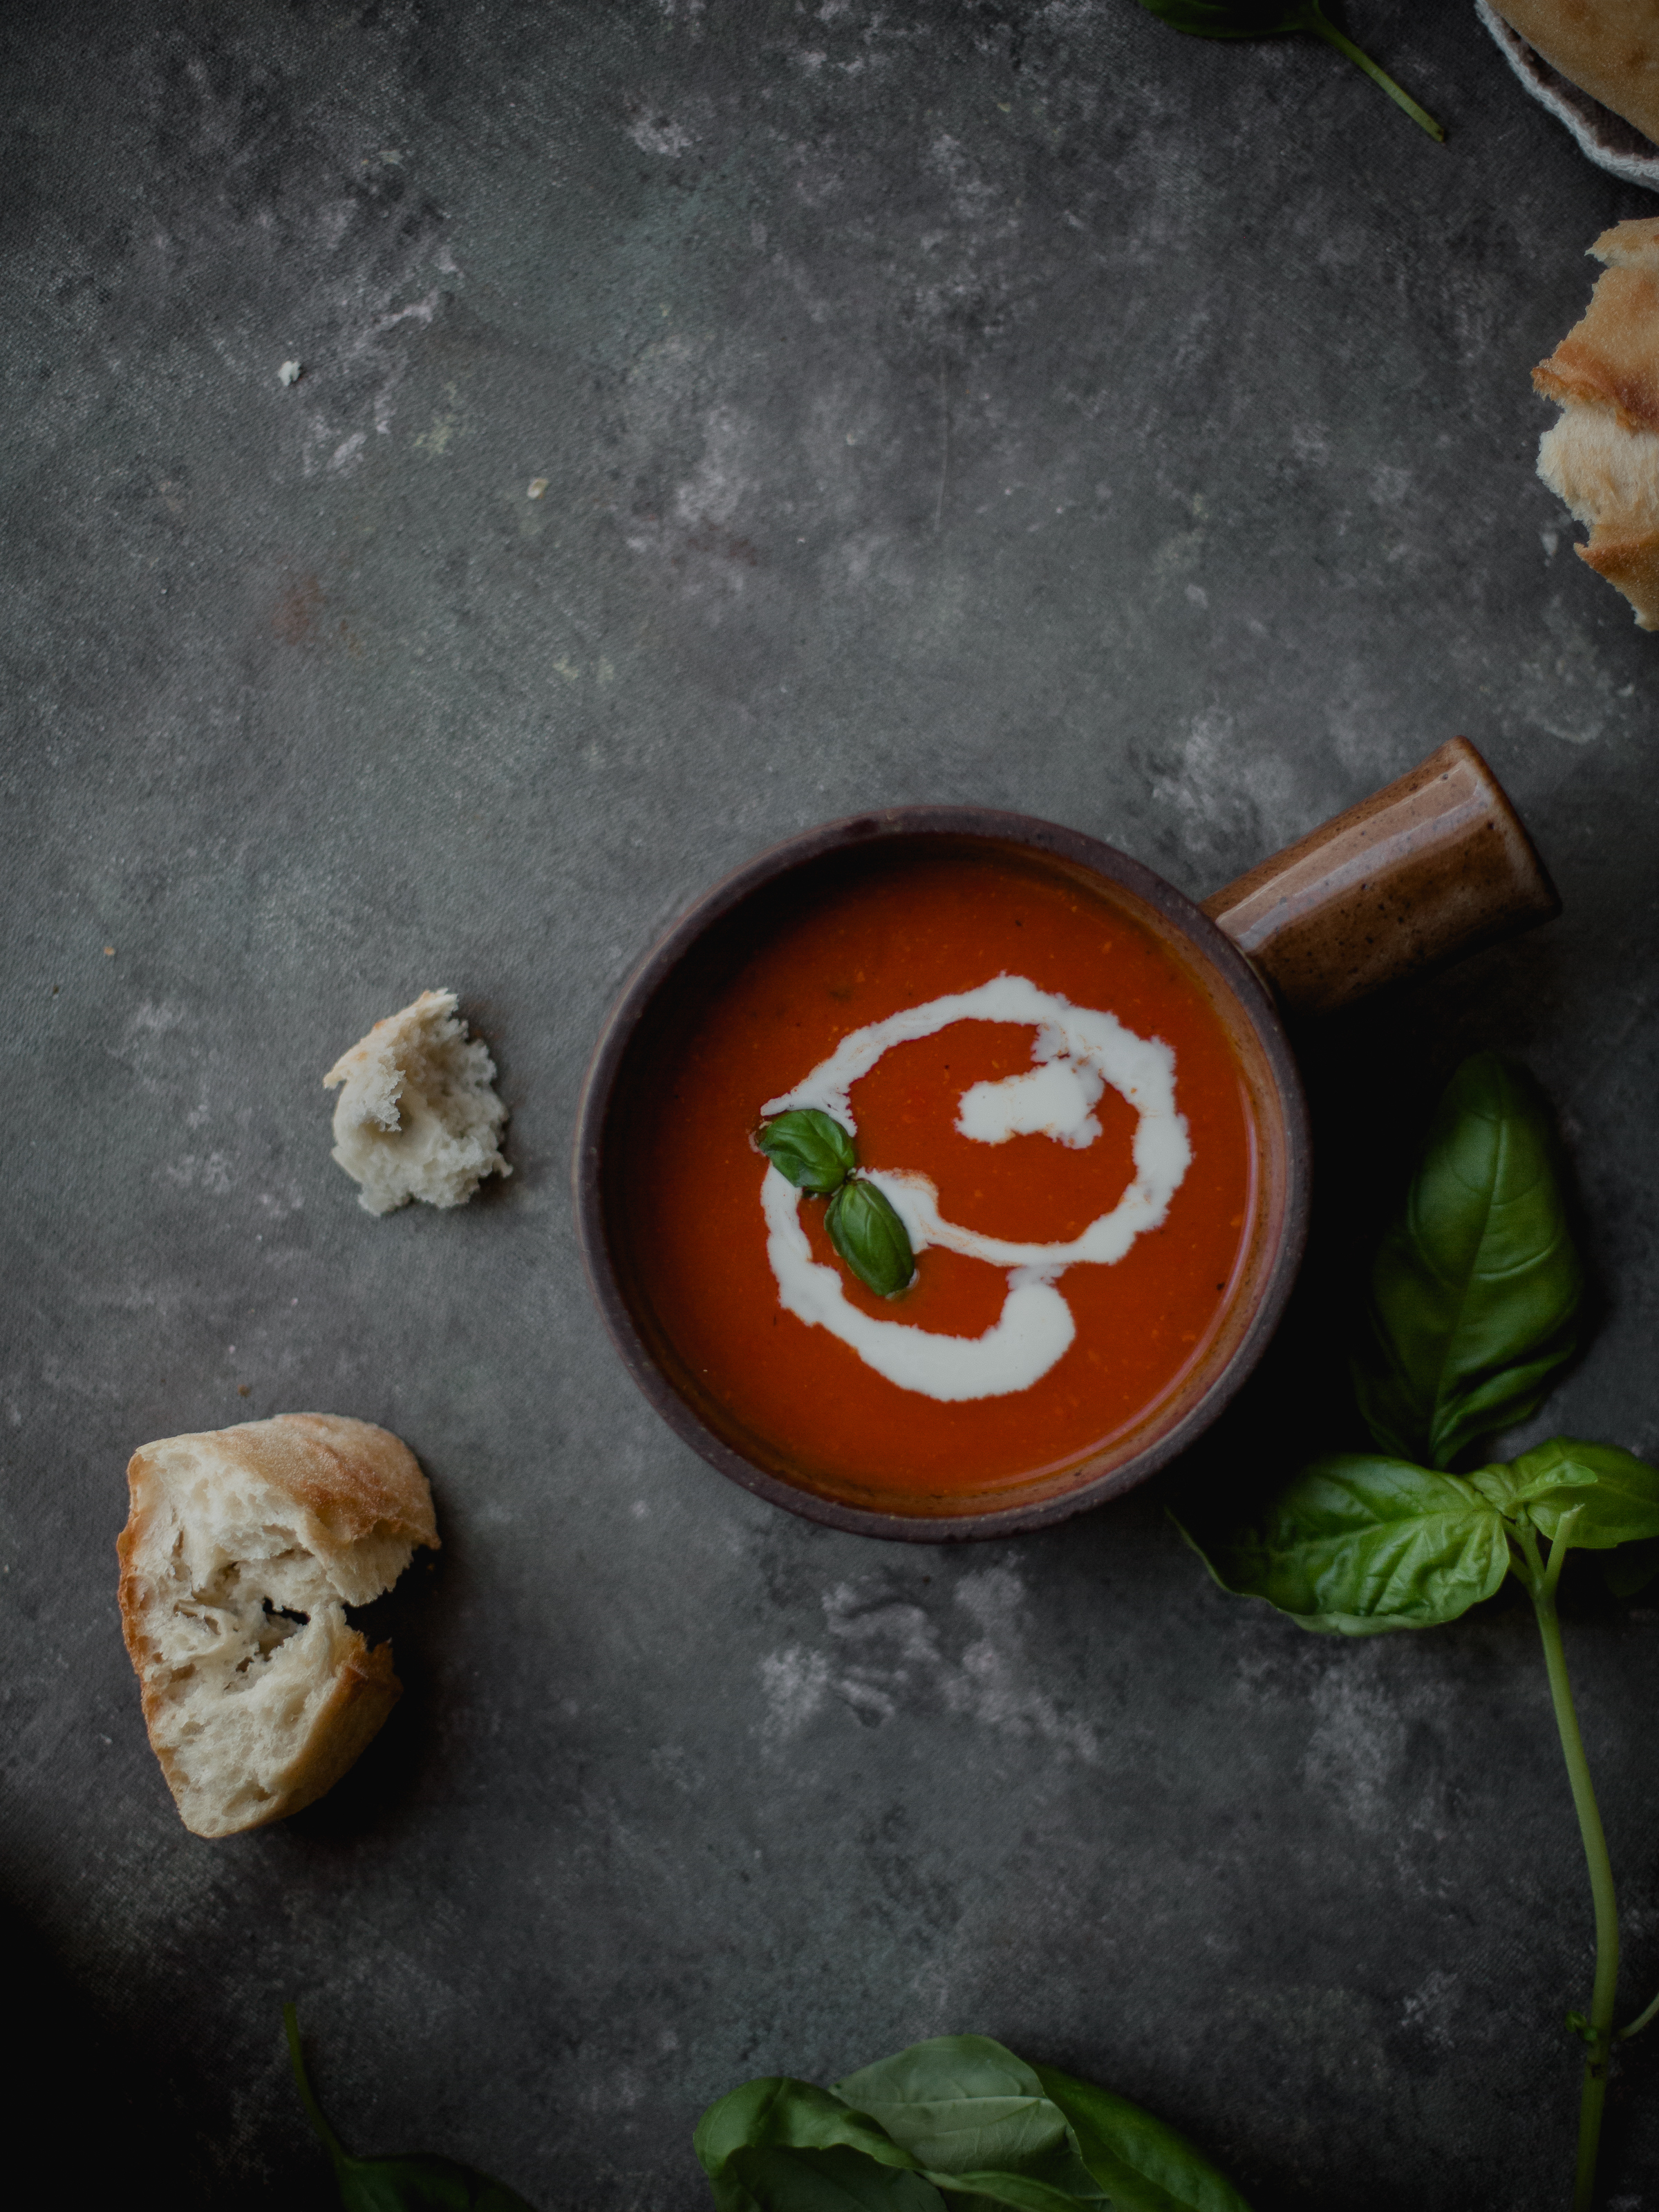 Creamy tomato pancetta soup for entertaining guests | from scratch, mostly blog